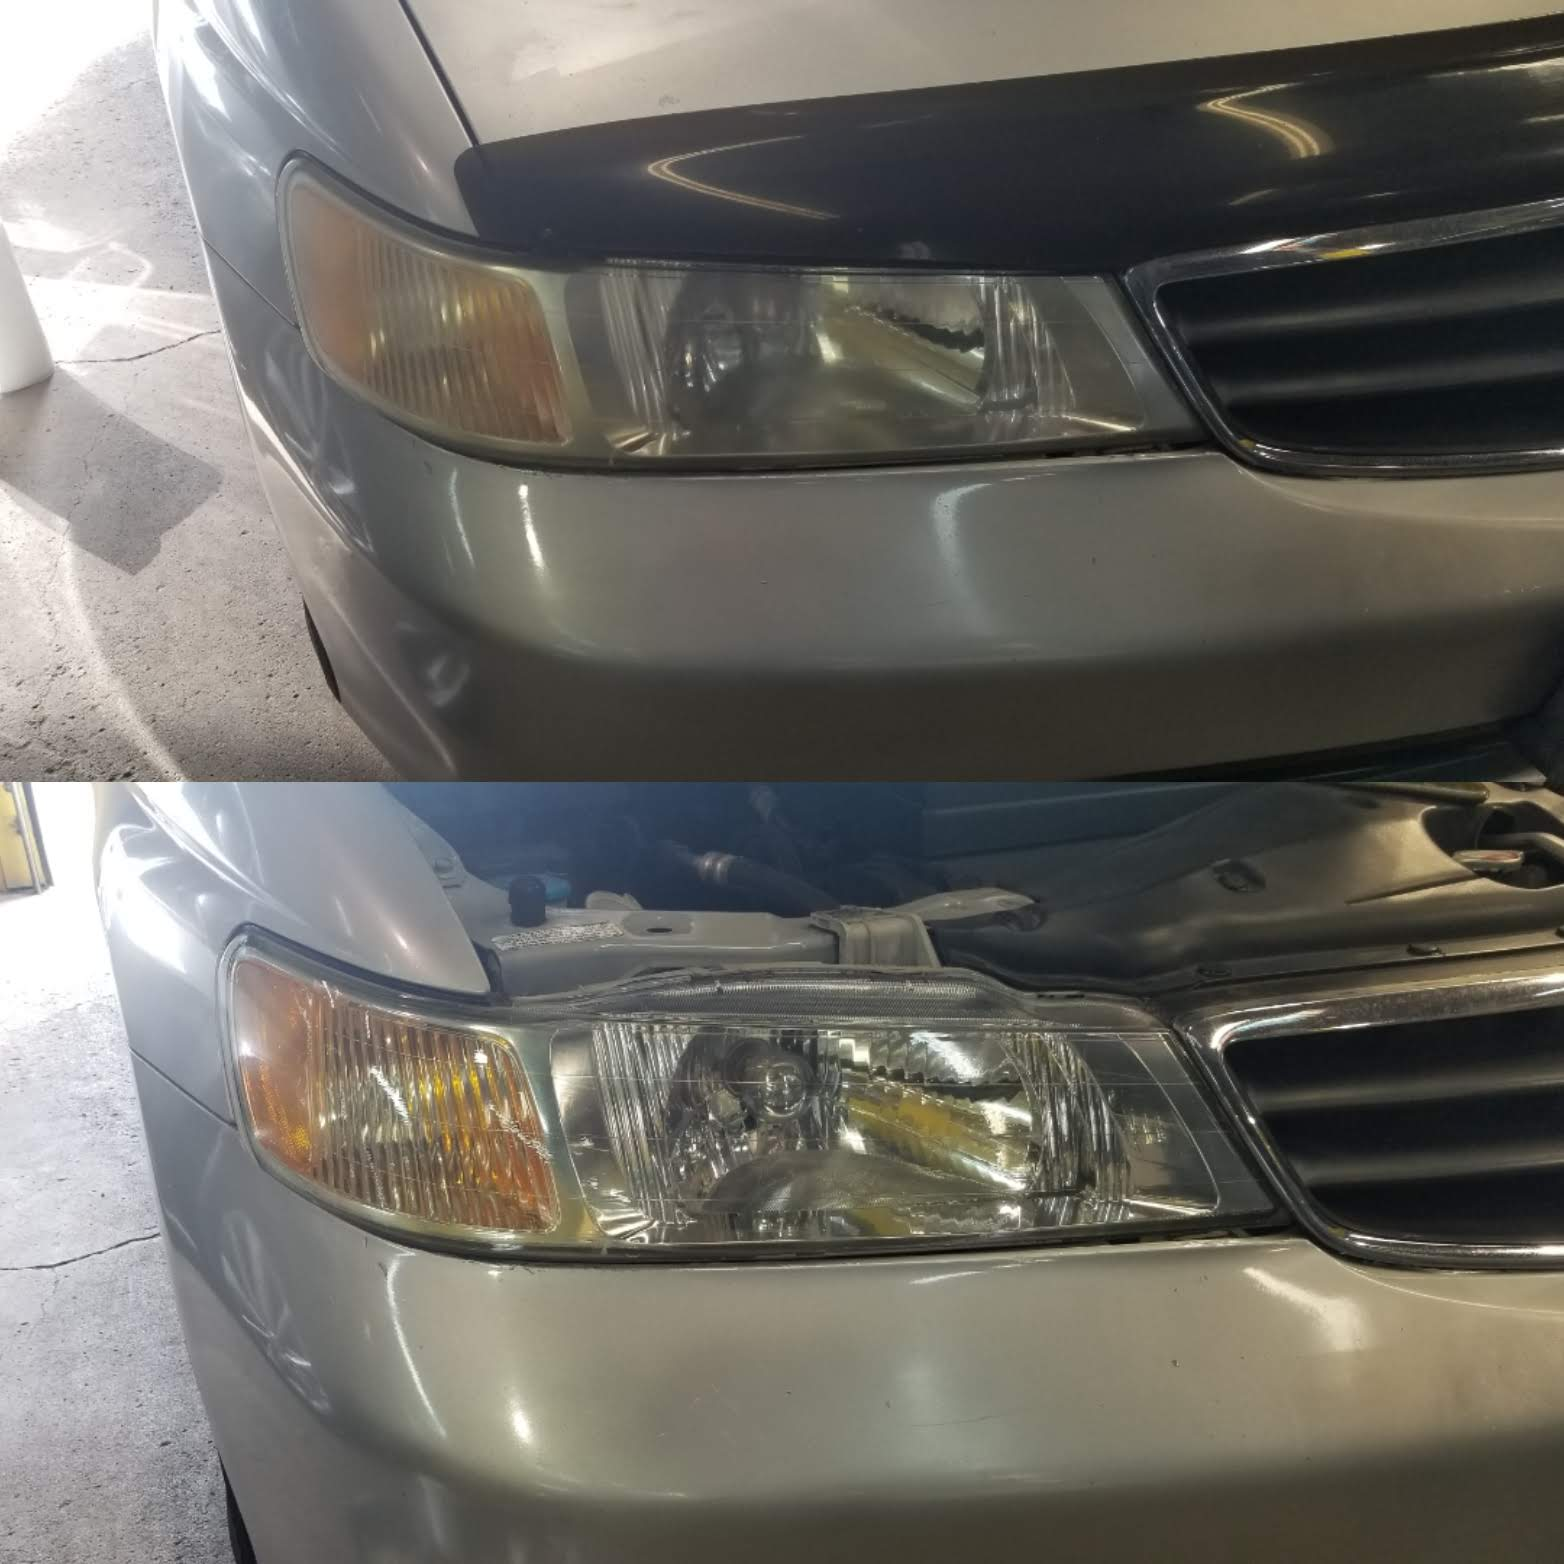 LensBoost Headlight Restoration Wipes Before and After